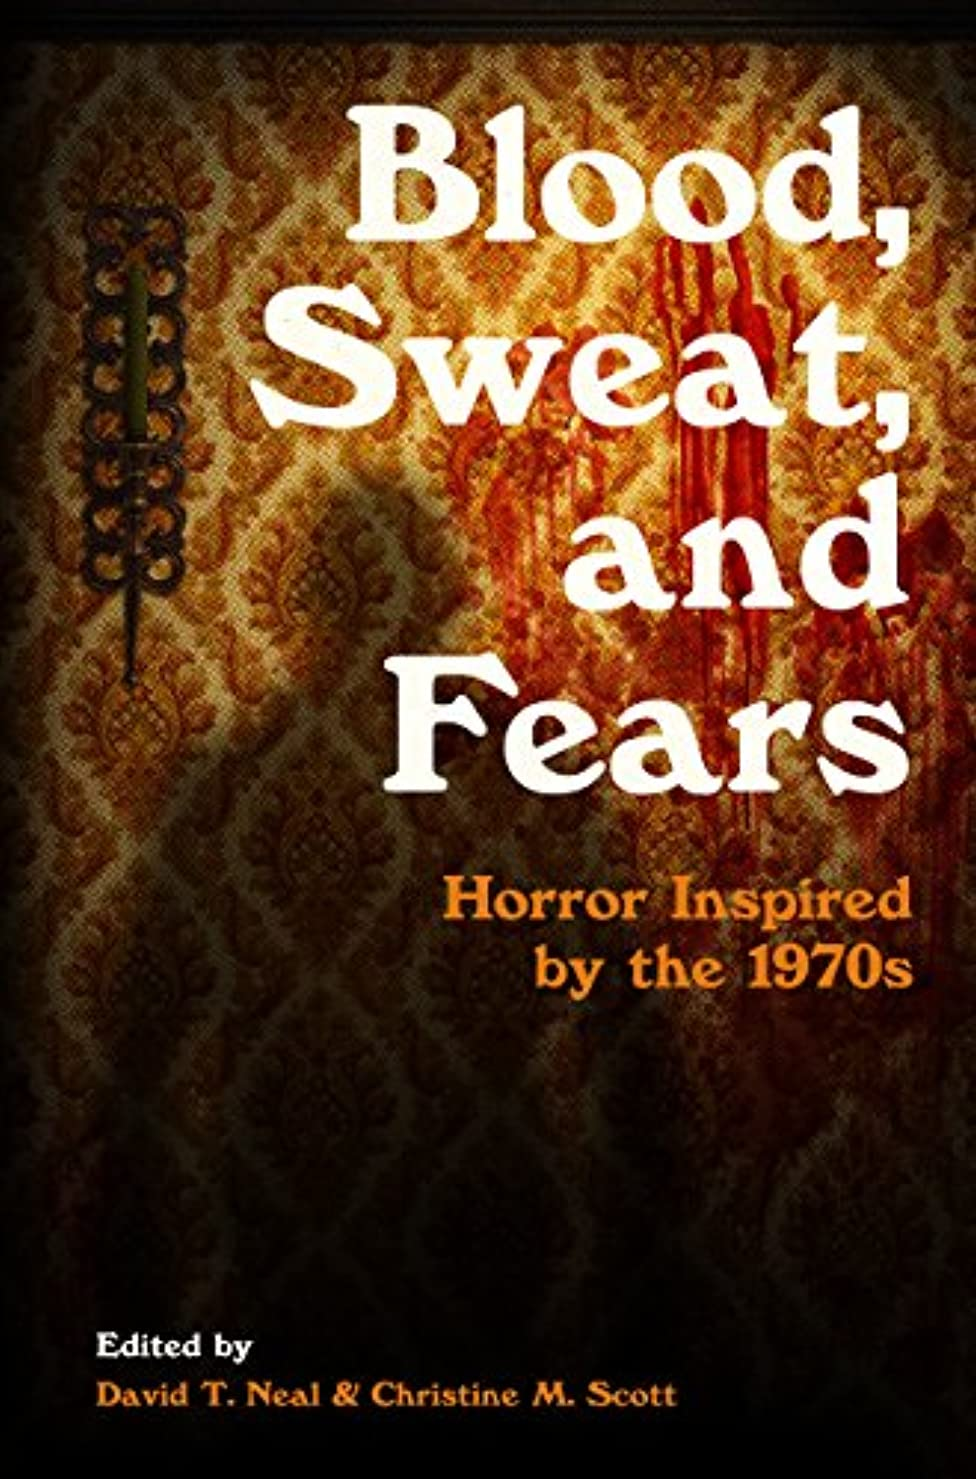 イサカきらきら安定したBlood, Sweat, and Fears: Horror Inspired by the 1970s (English Edition)